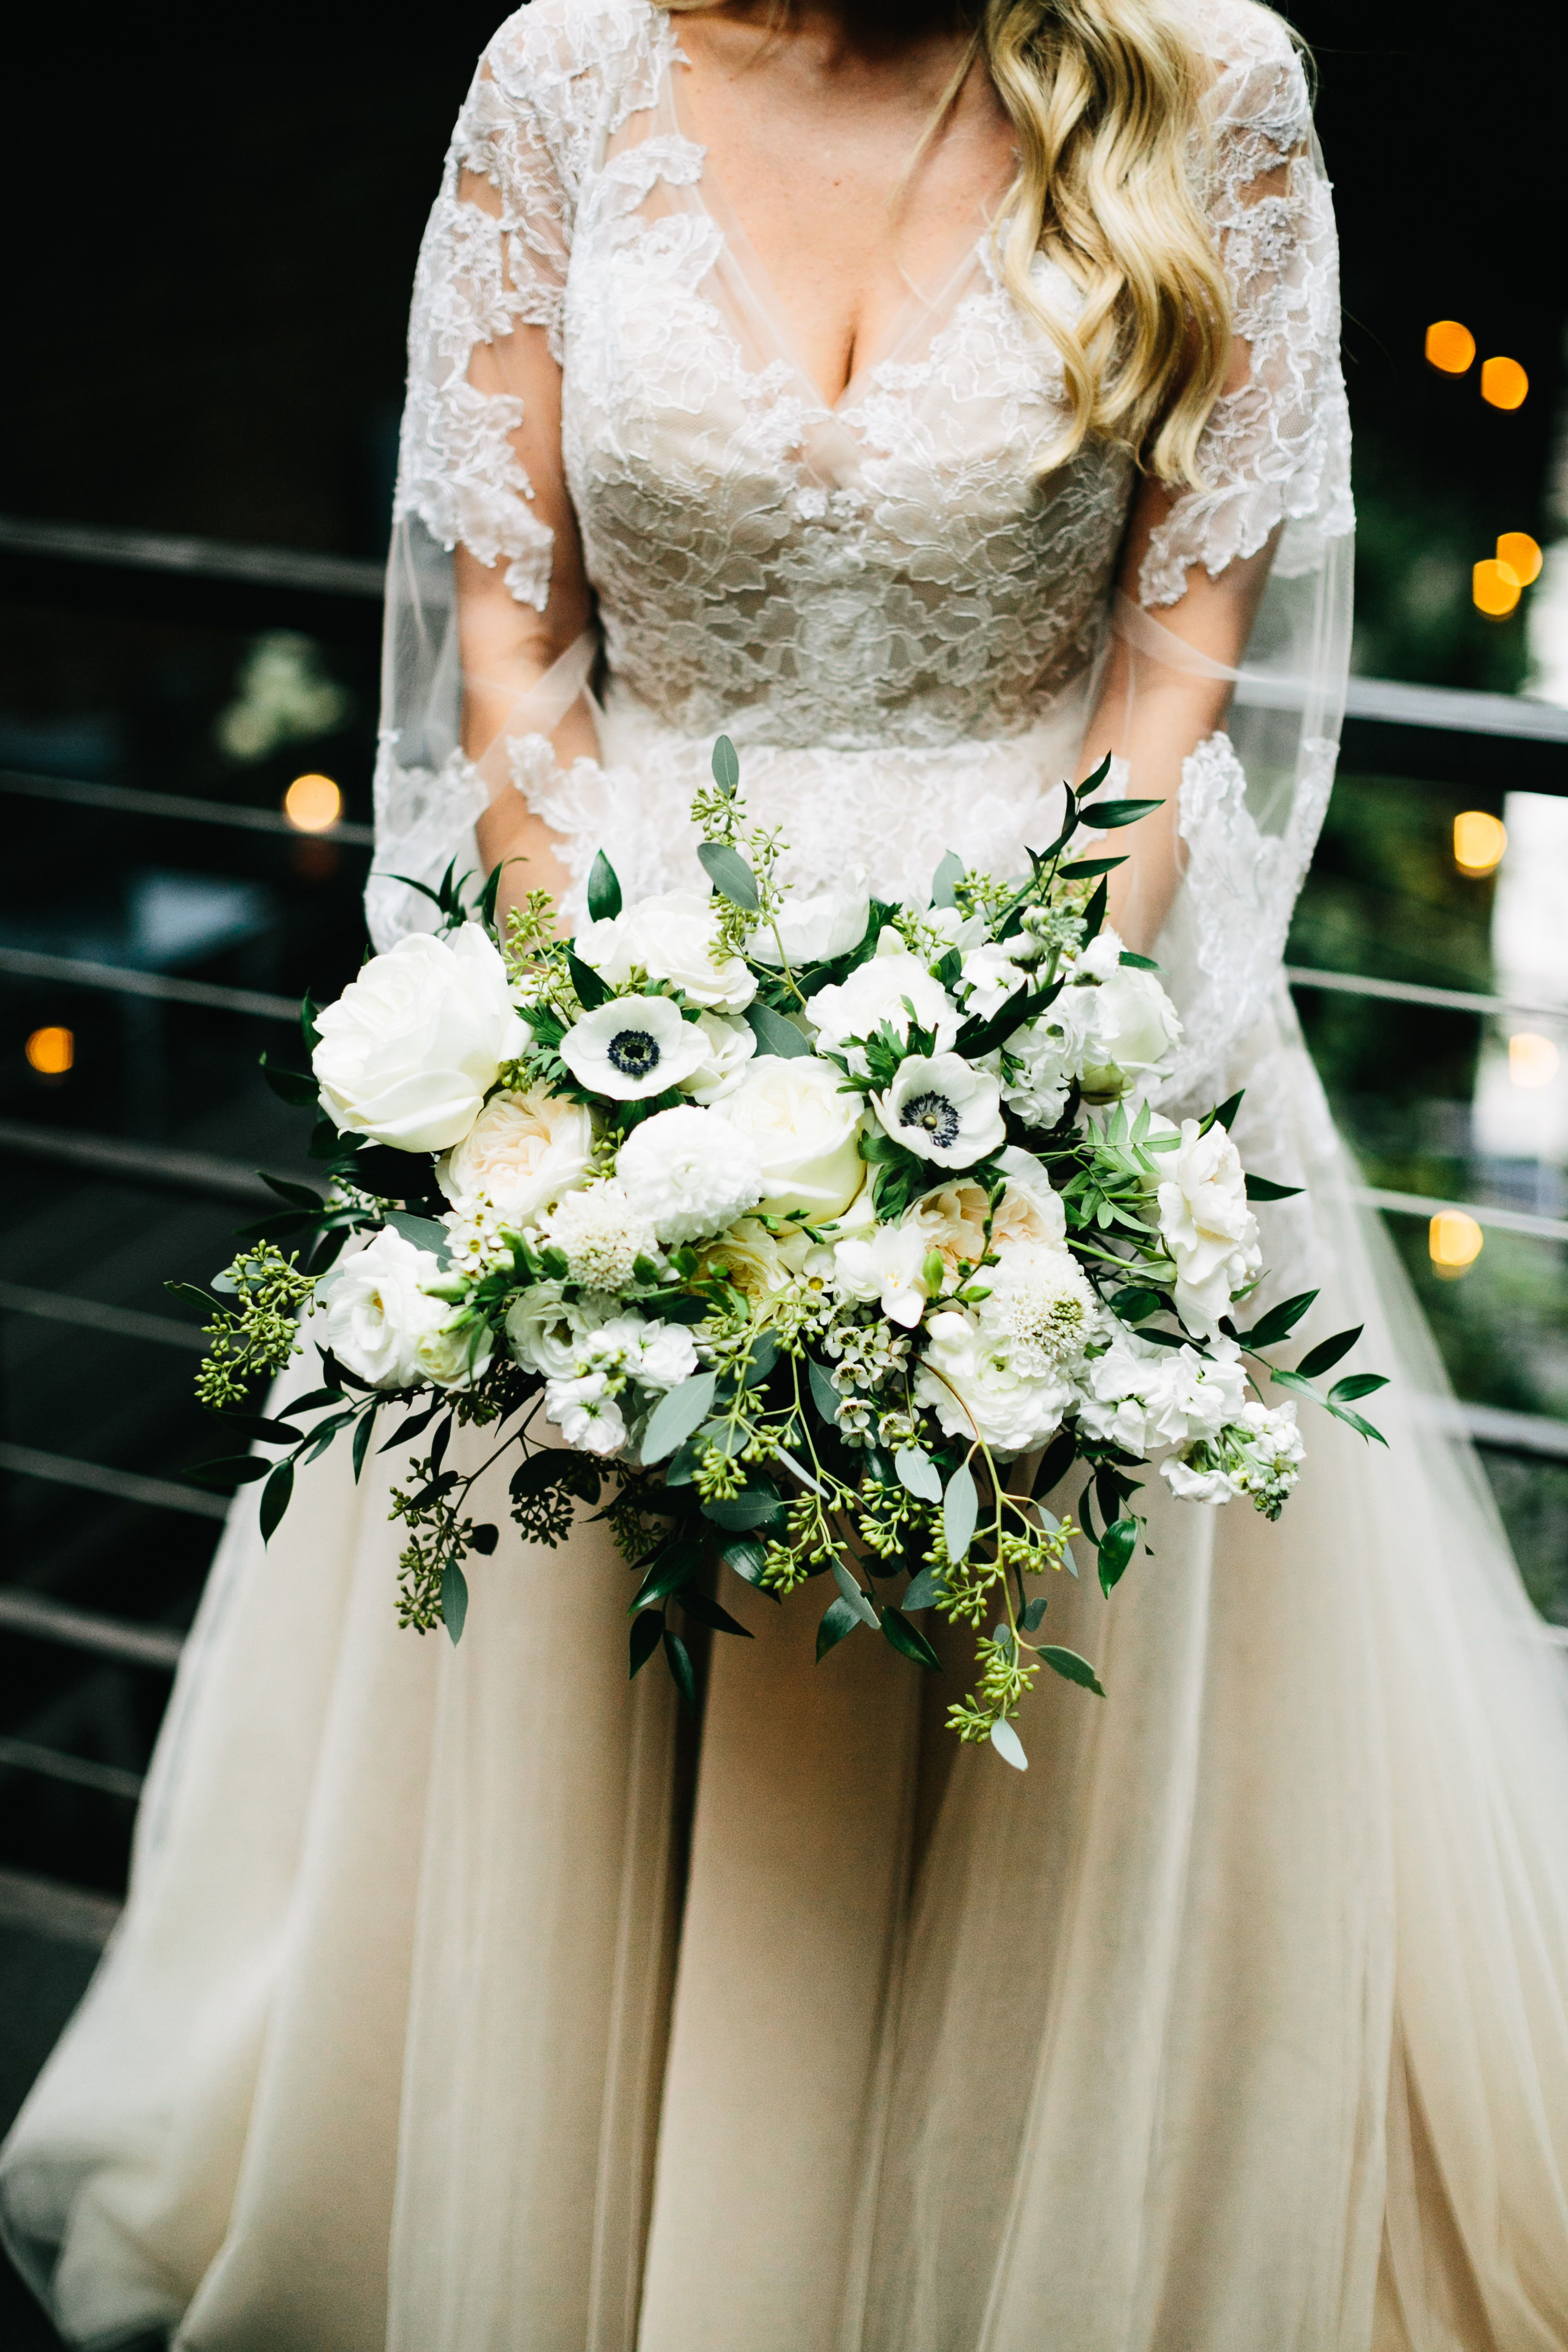 Lush Garden Bridal Bouquet With Anemones Garden Roses And